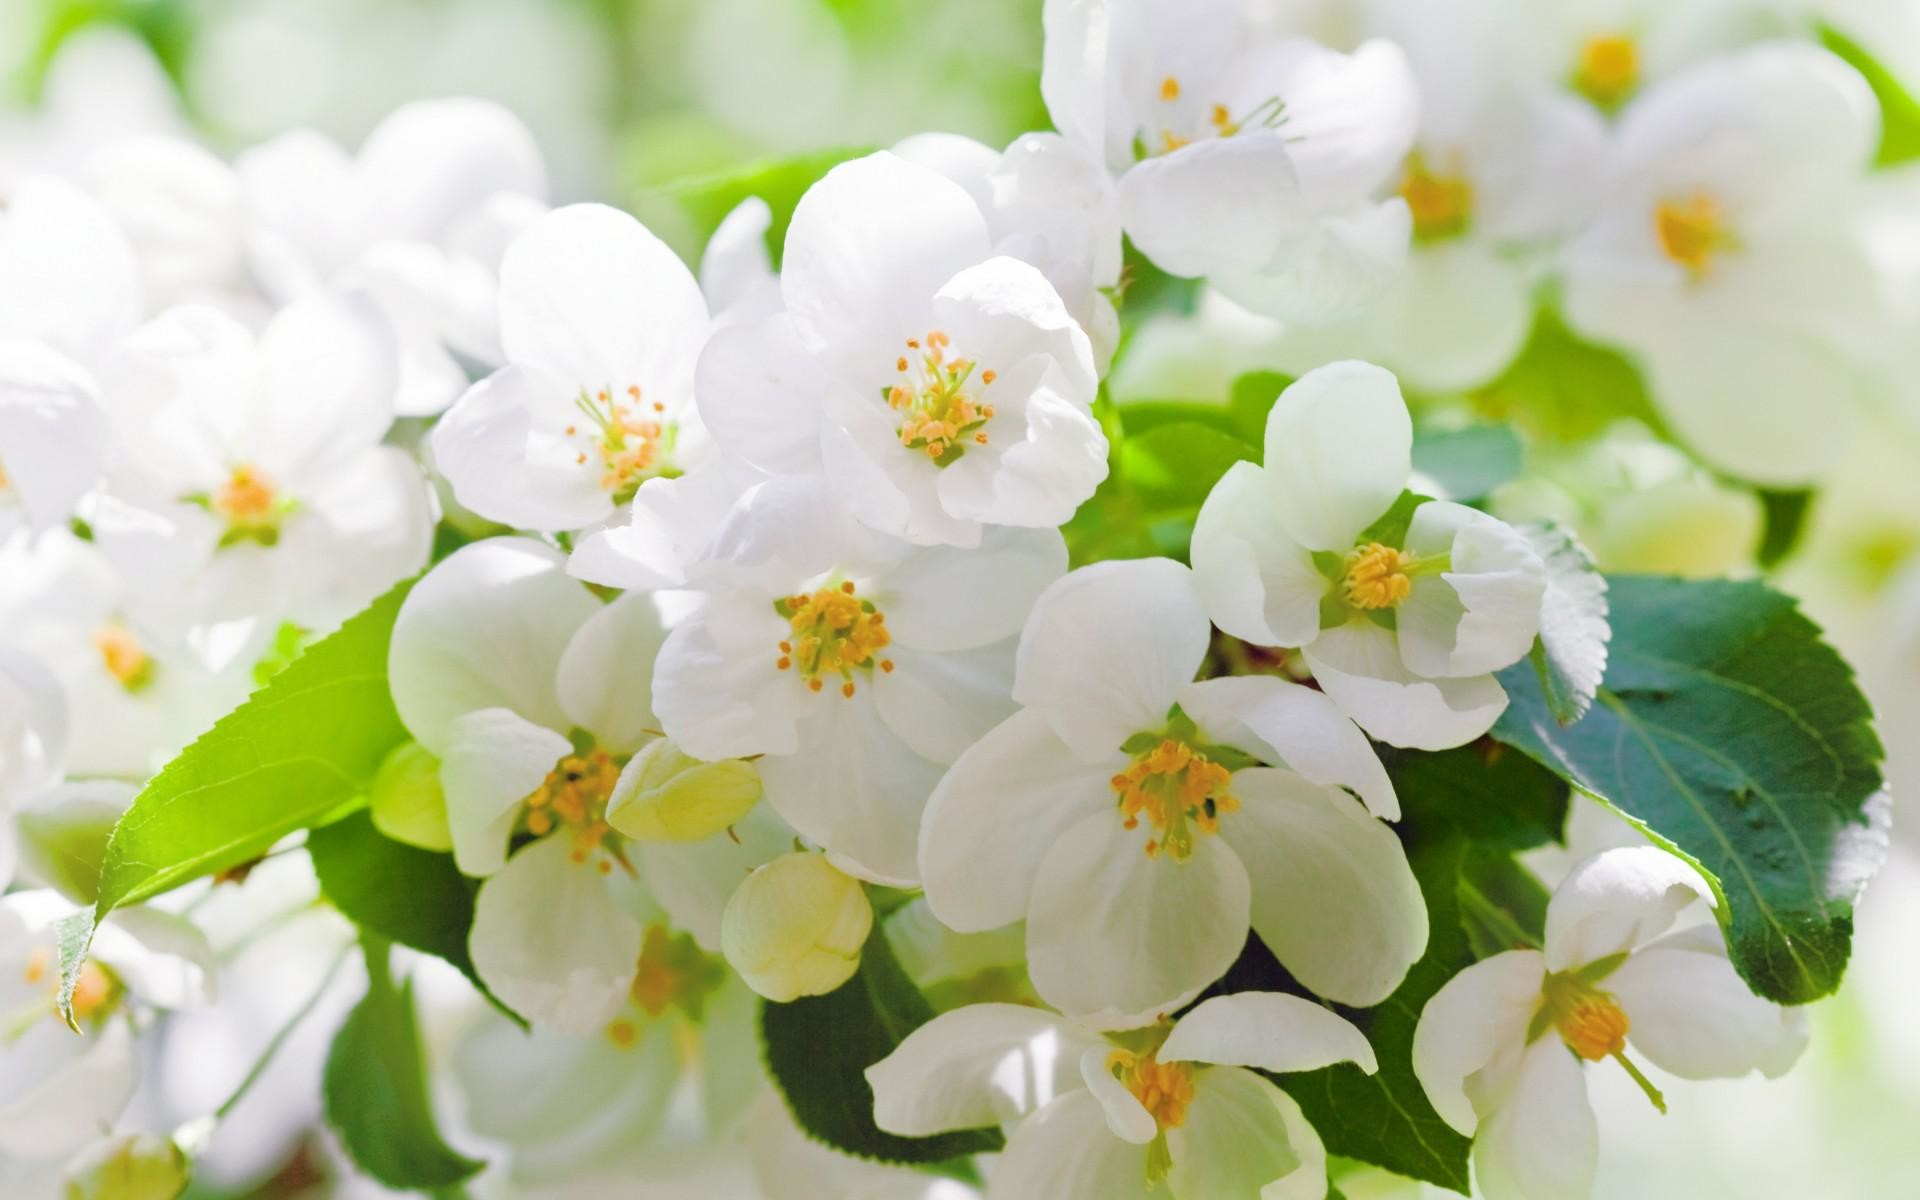 Res: 1920x1200, Cherry Blossoms Flowers White Petals Leaves Branches Trees Spring HD  Widescreen wallpaper thumb